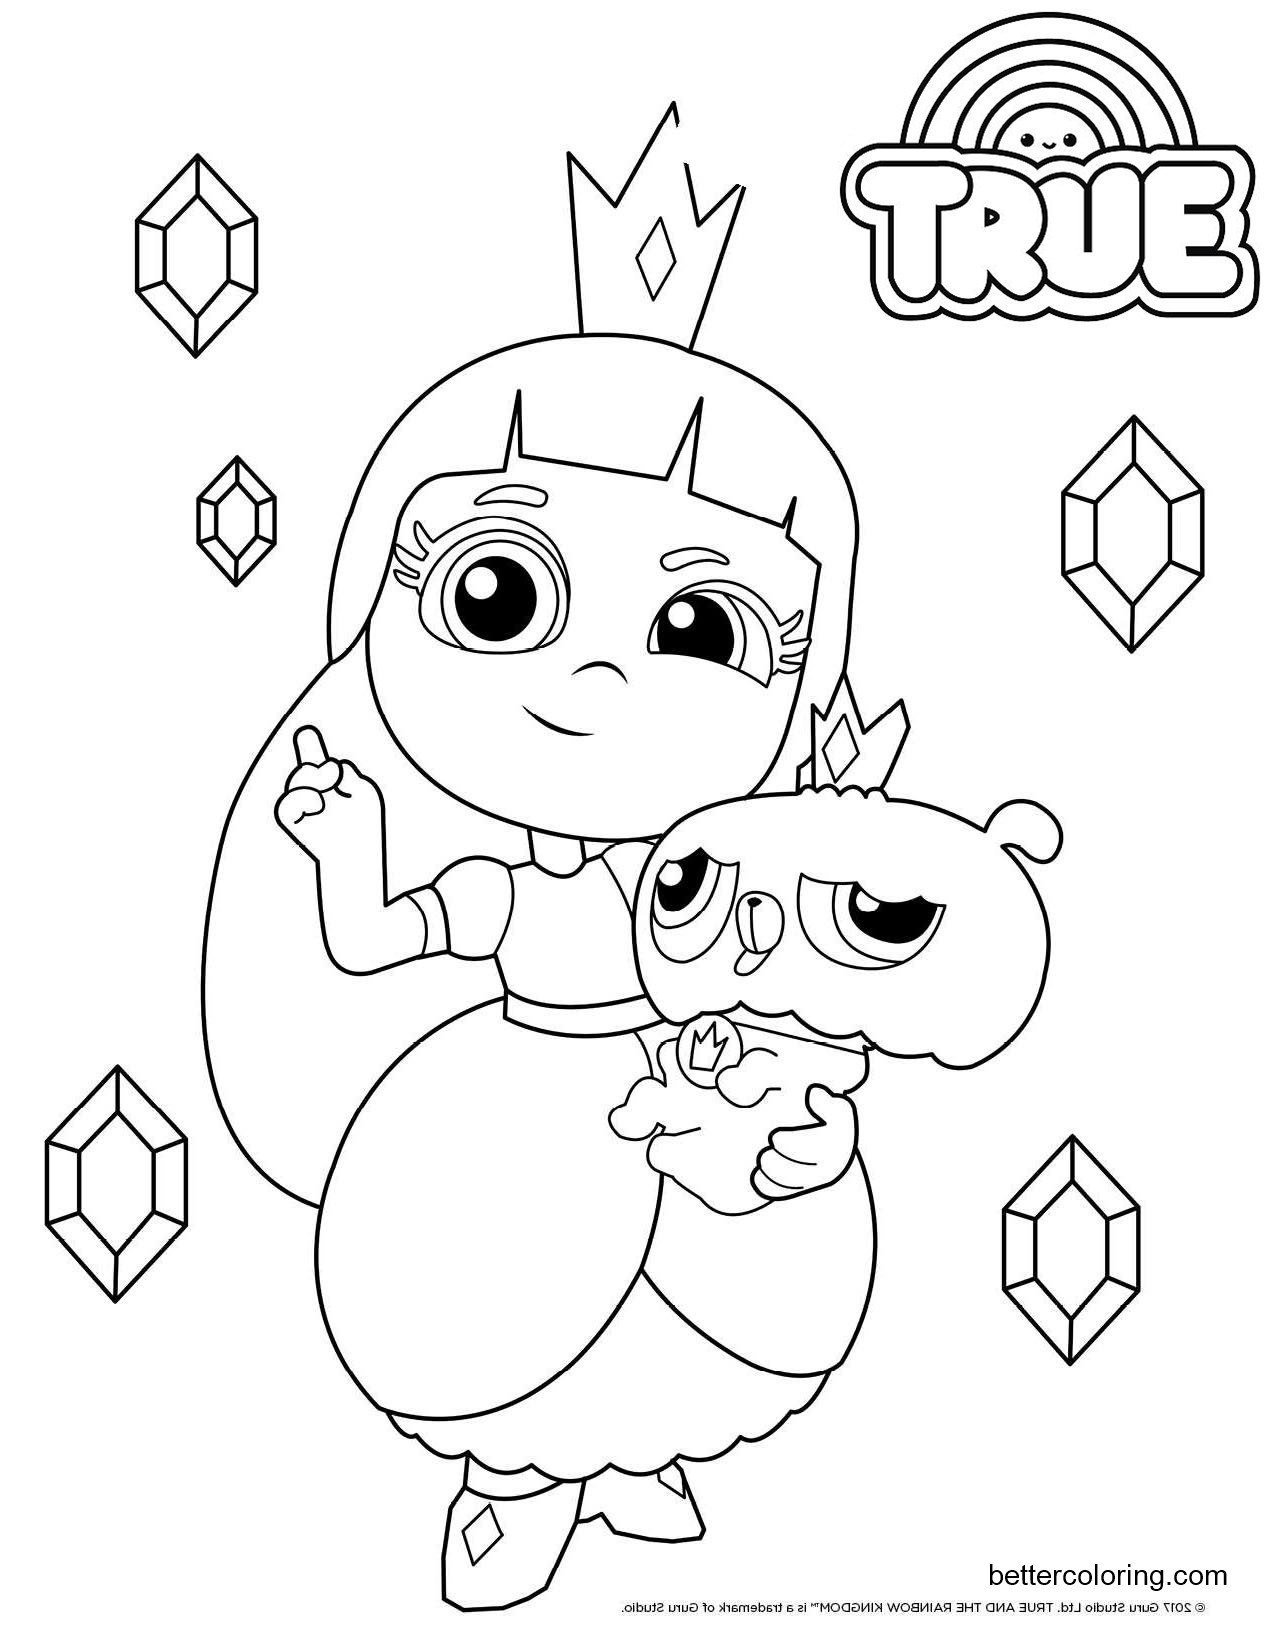 rainbow kingdom coloring pages true rainbow kingdom coloring pages kidsworksheetfun coloring kingdom rainbow pages